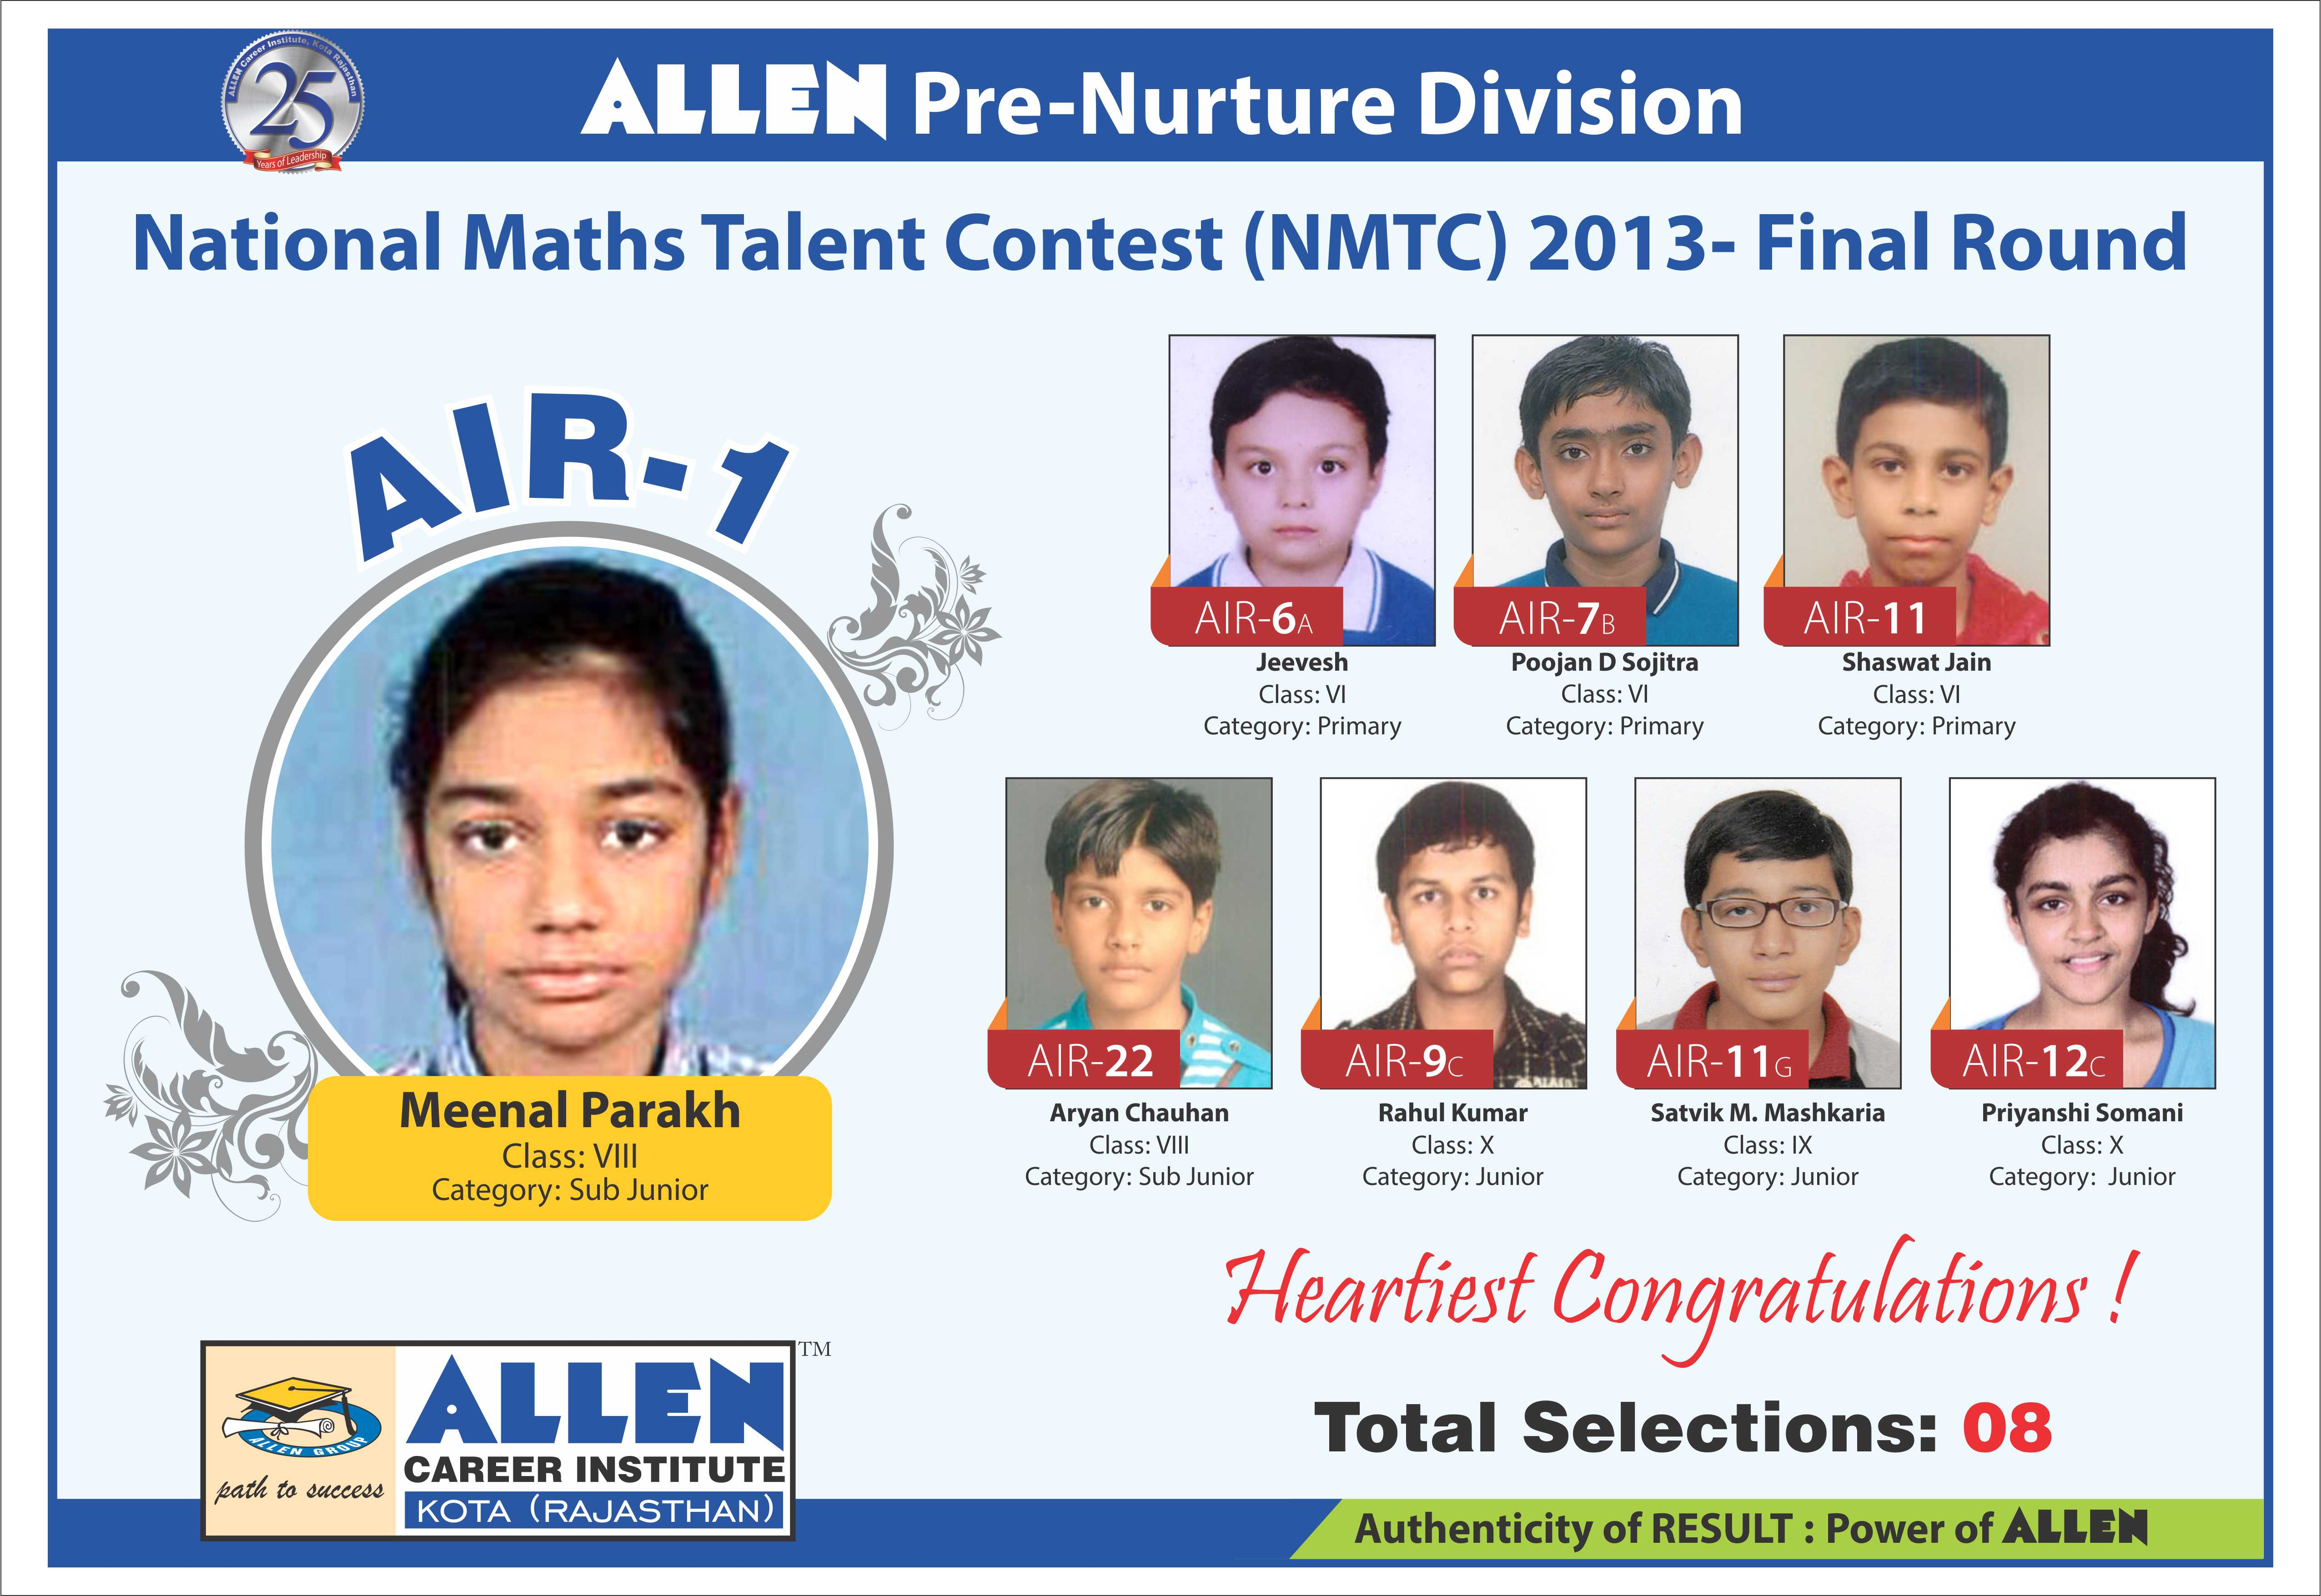 NMTC-Final-Round3 Jee Exam Application Form Last Date on